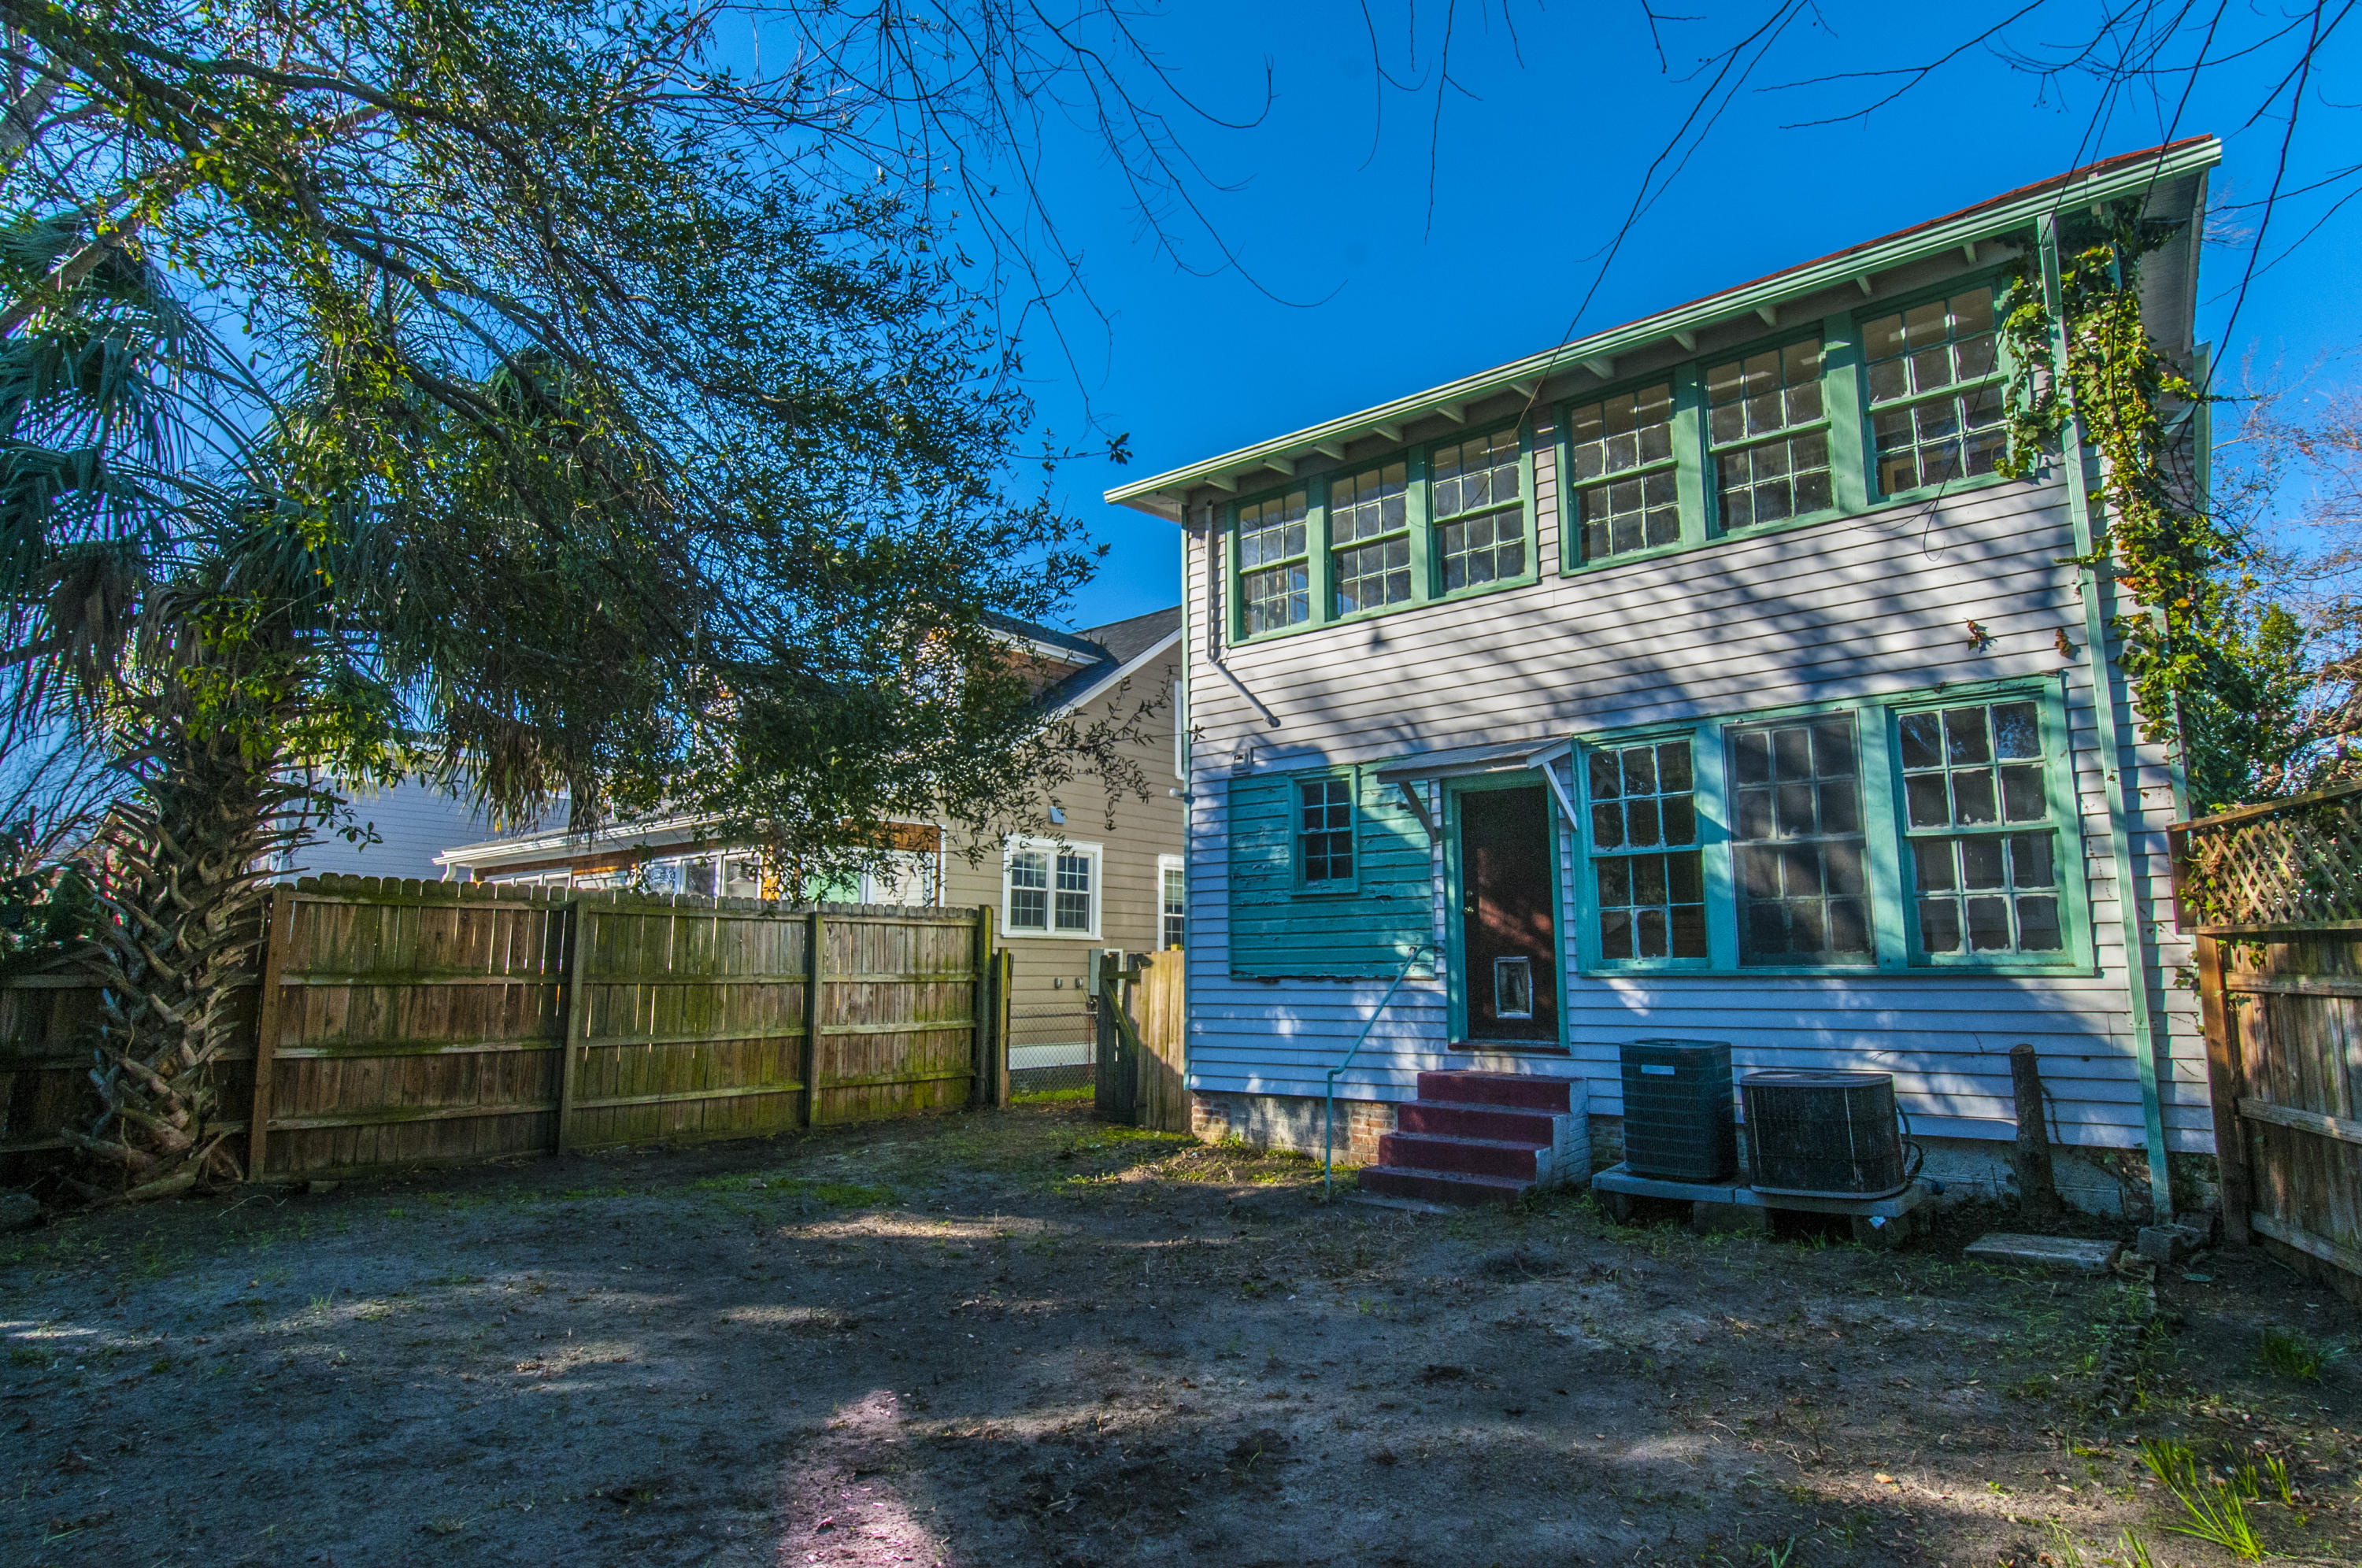 Photo of 39 Poplar St, Charleston, SC 29403